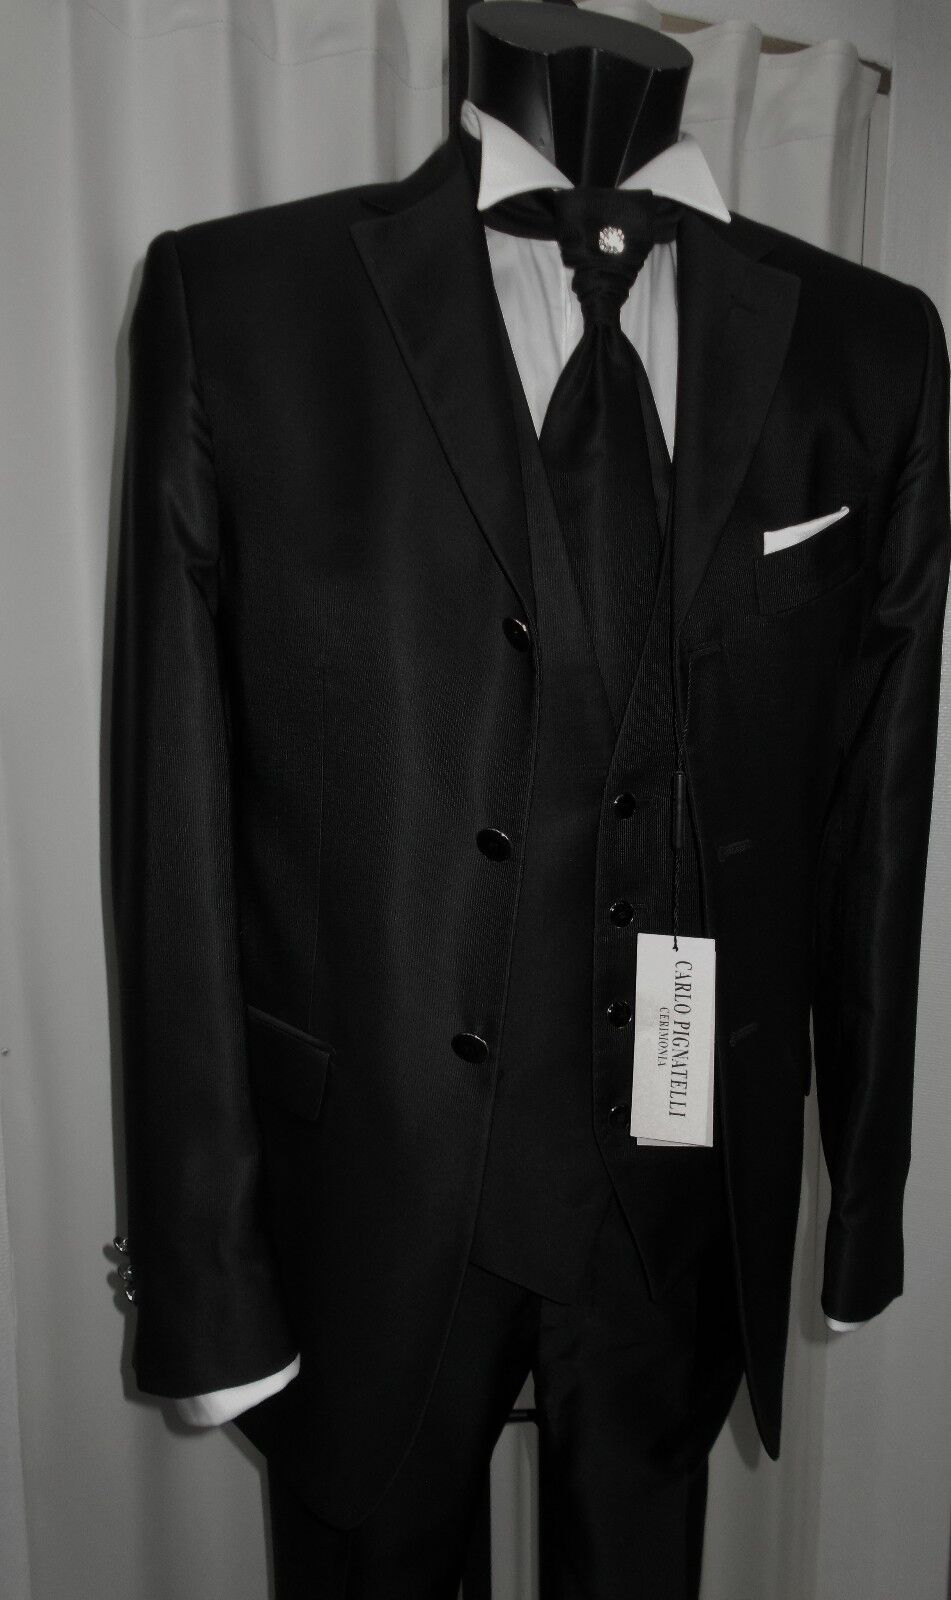 Suit Groom T.50 Signed Carlo Pignatelli Suit Groom Wedding Designer